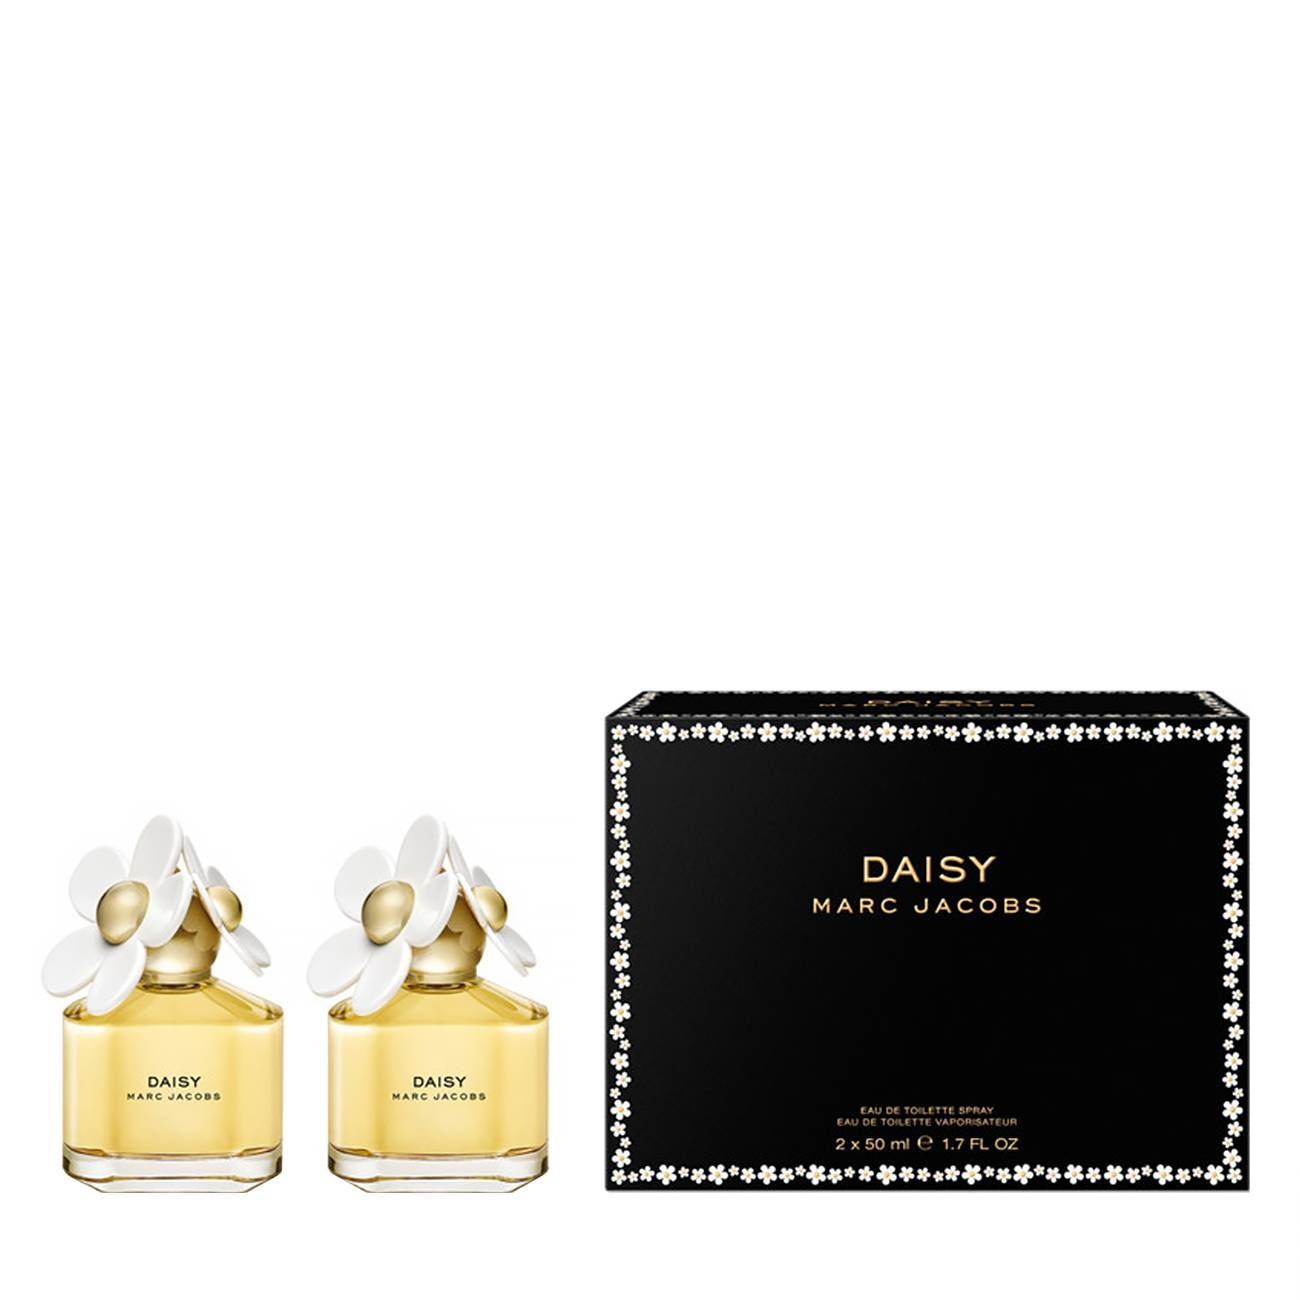 Daisy Set 100ml Marc Jacobs imagine 2021 bestvalue.eu